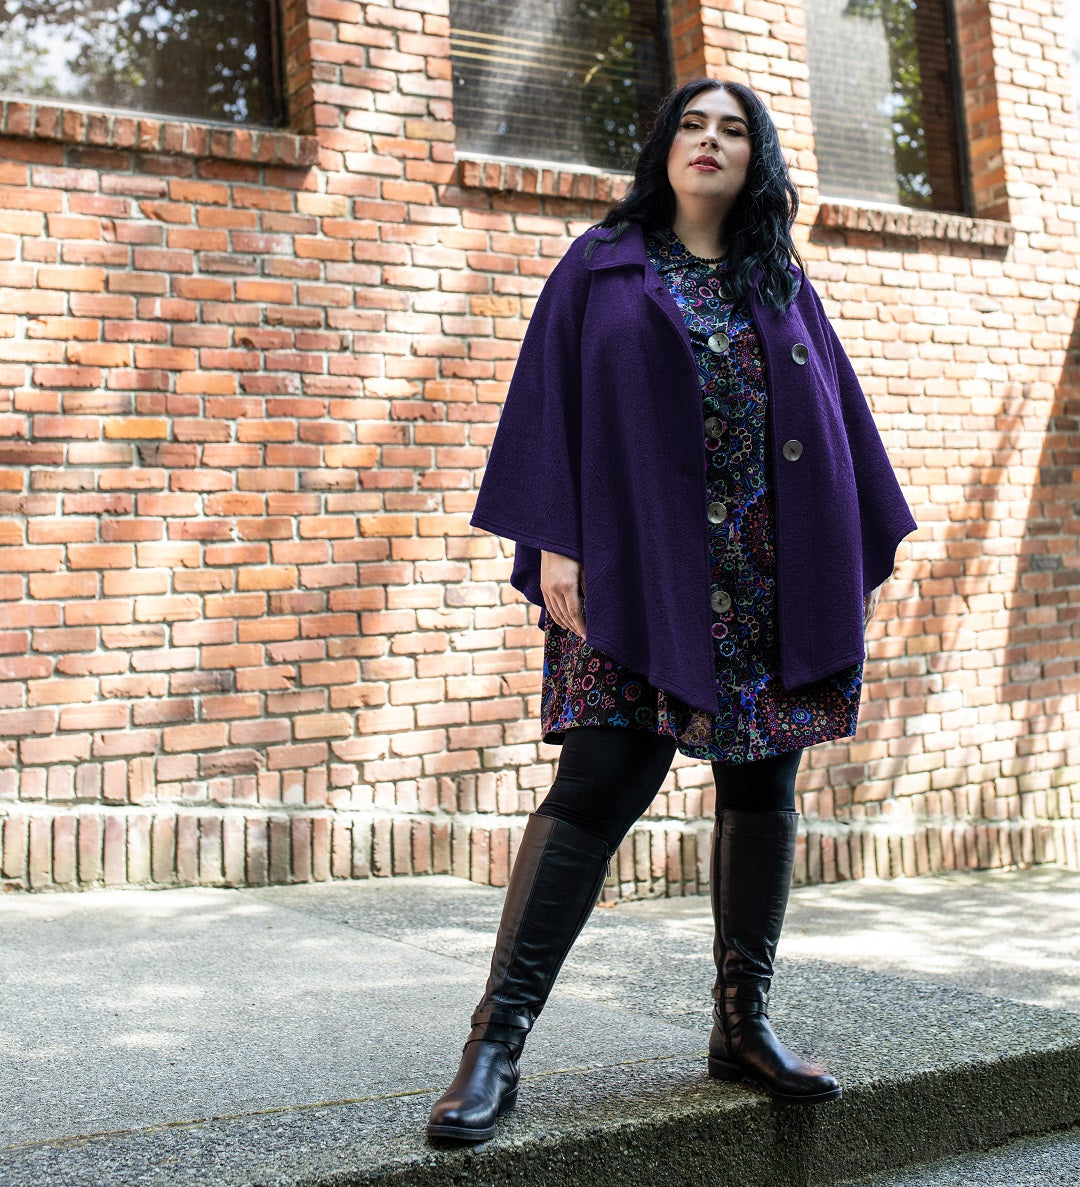 Diane Kennedy Wool Cape in purple on model Veronica Belle